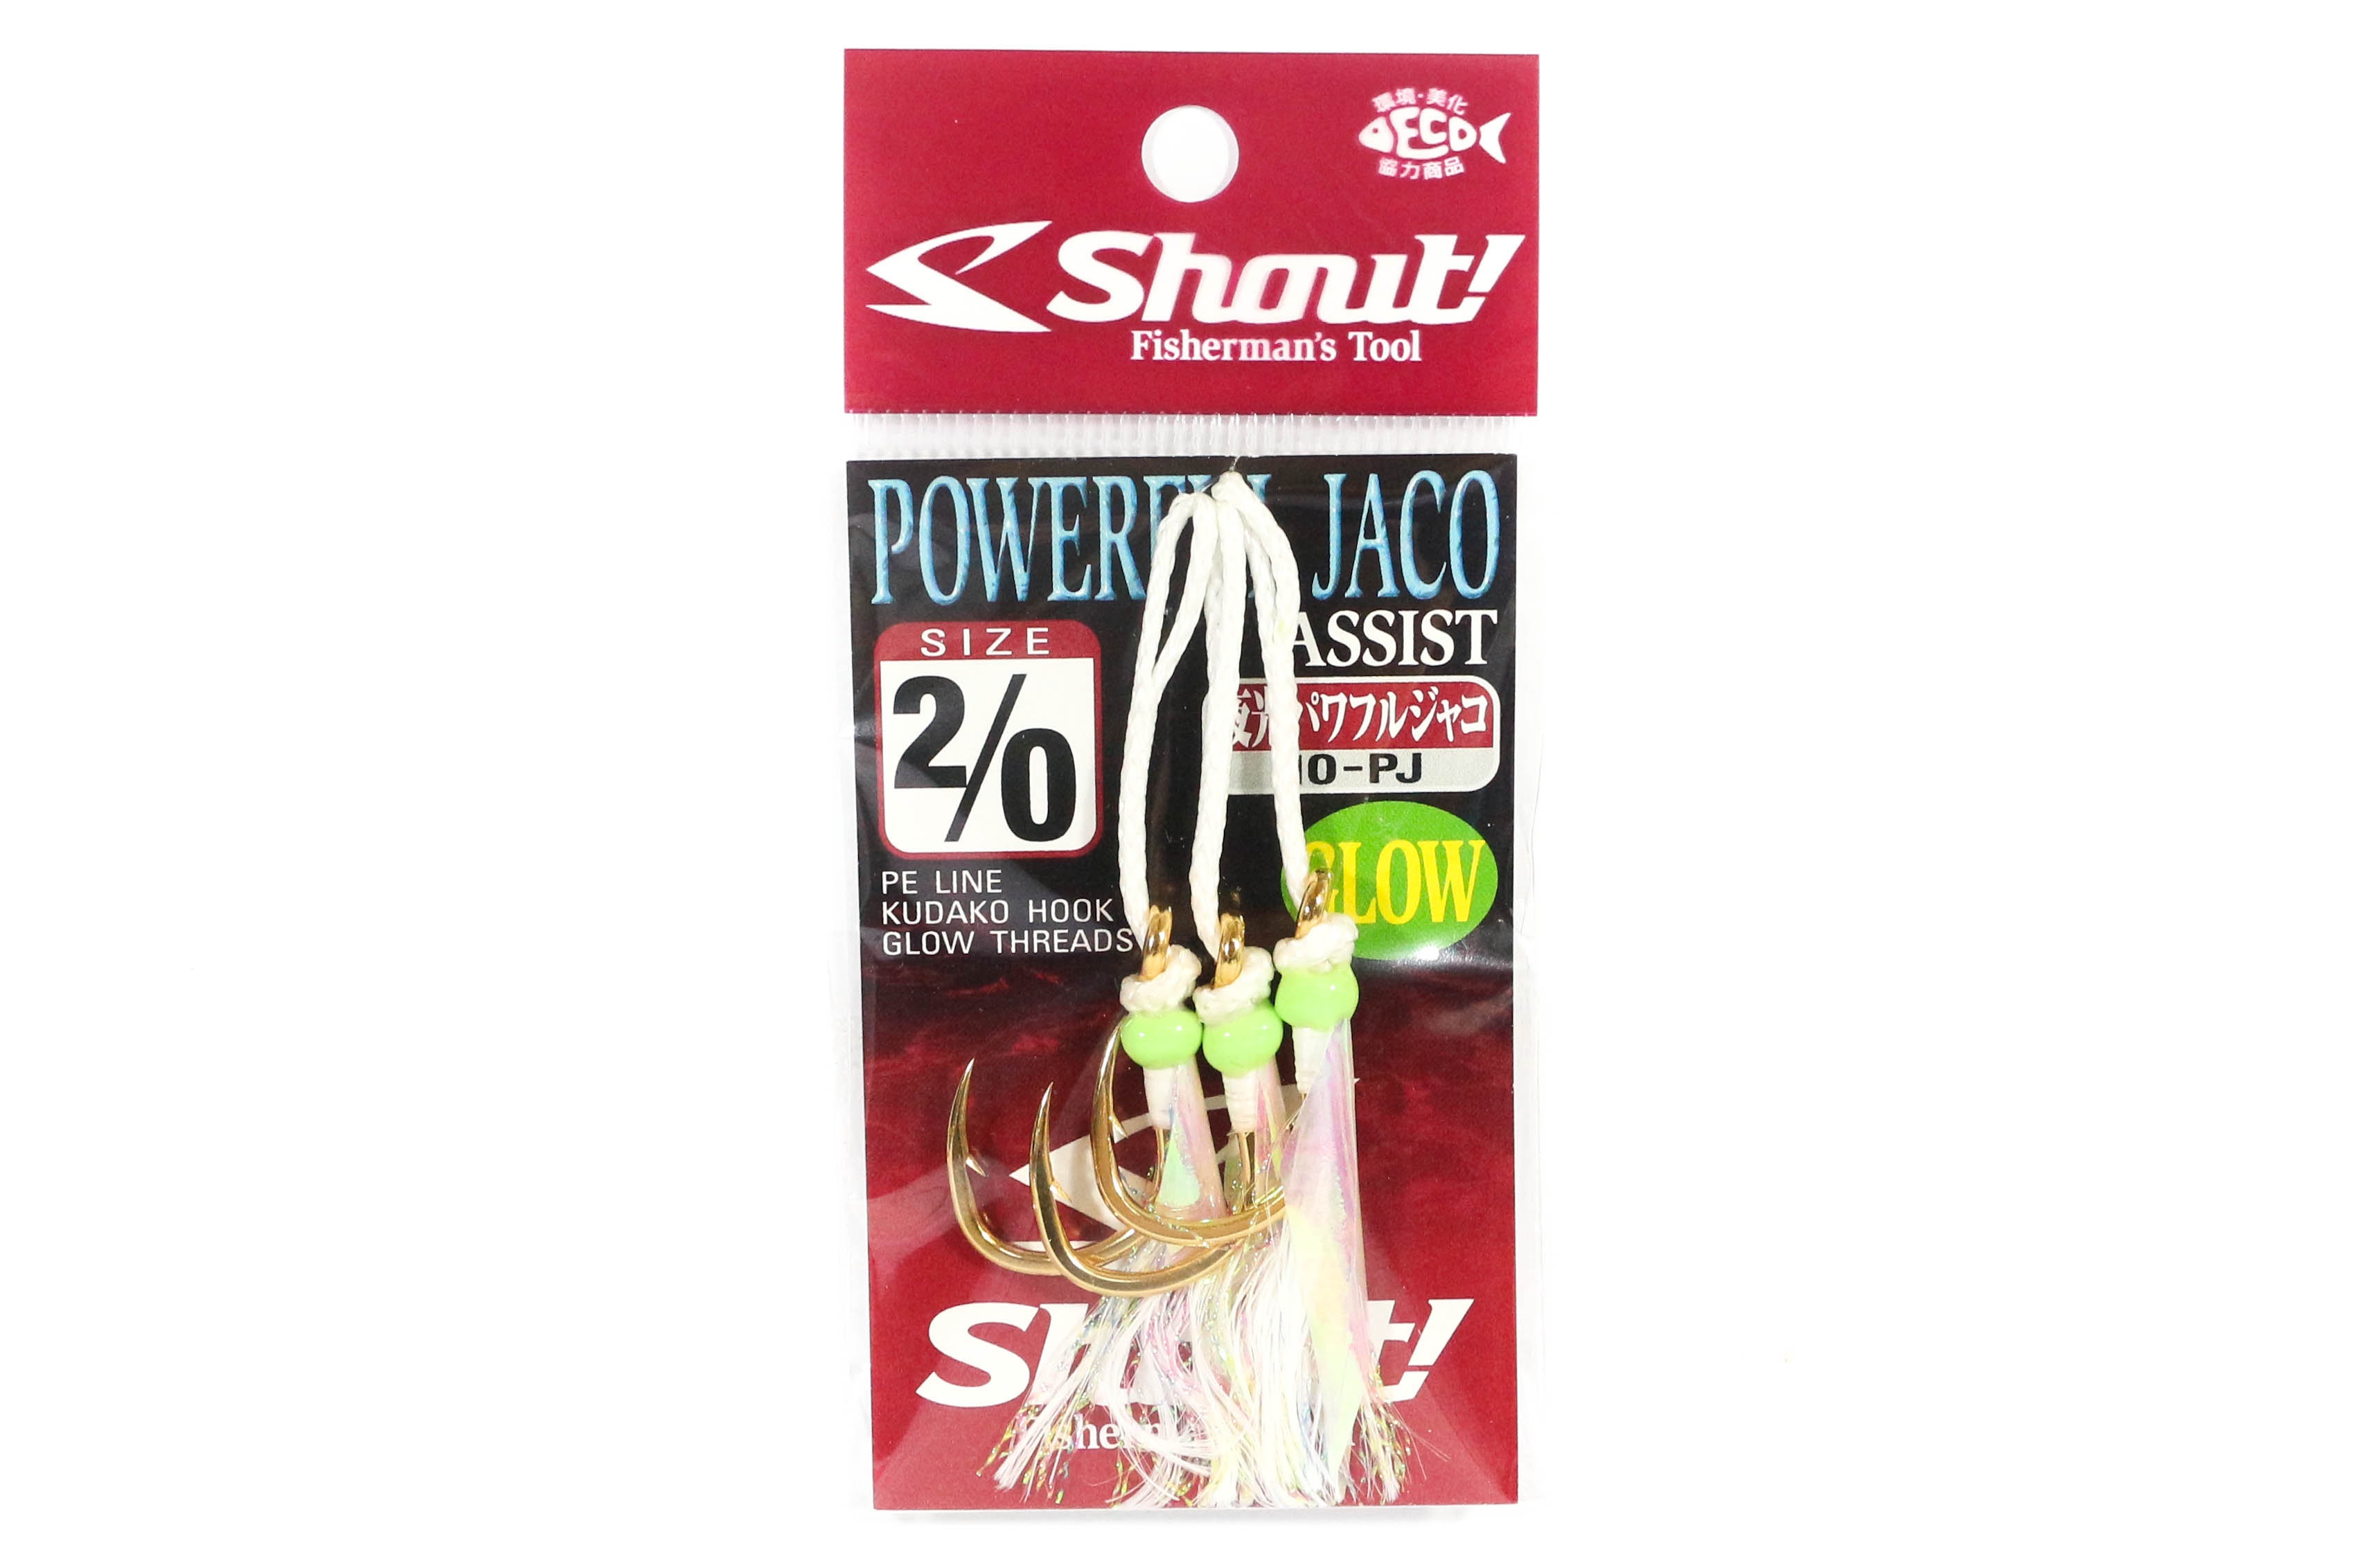 Shout 10-PJ Powerful Jaco Hook Rigged Assist Glow Size 2/0 (8209)